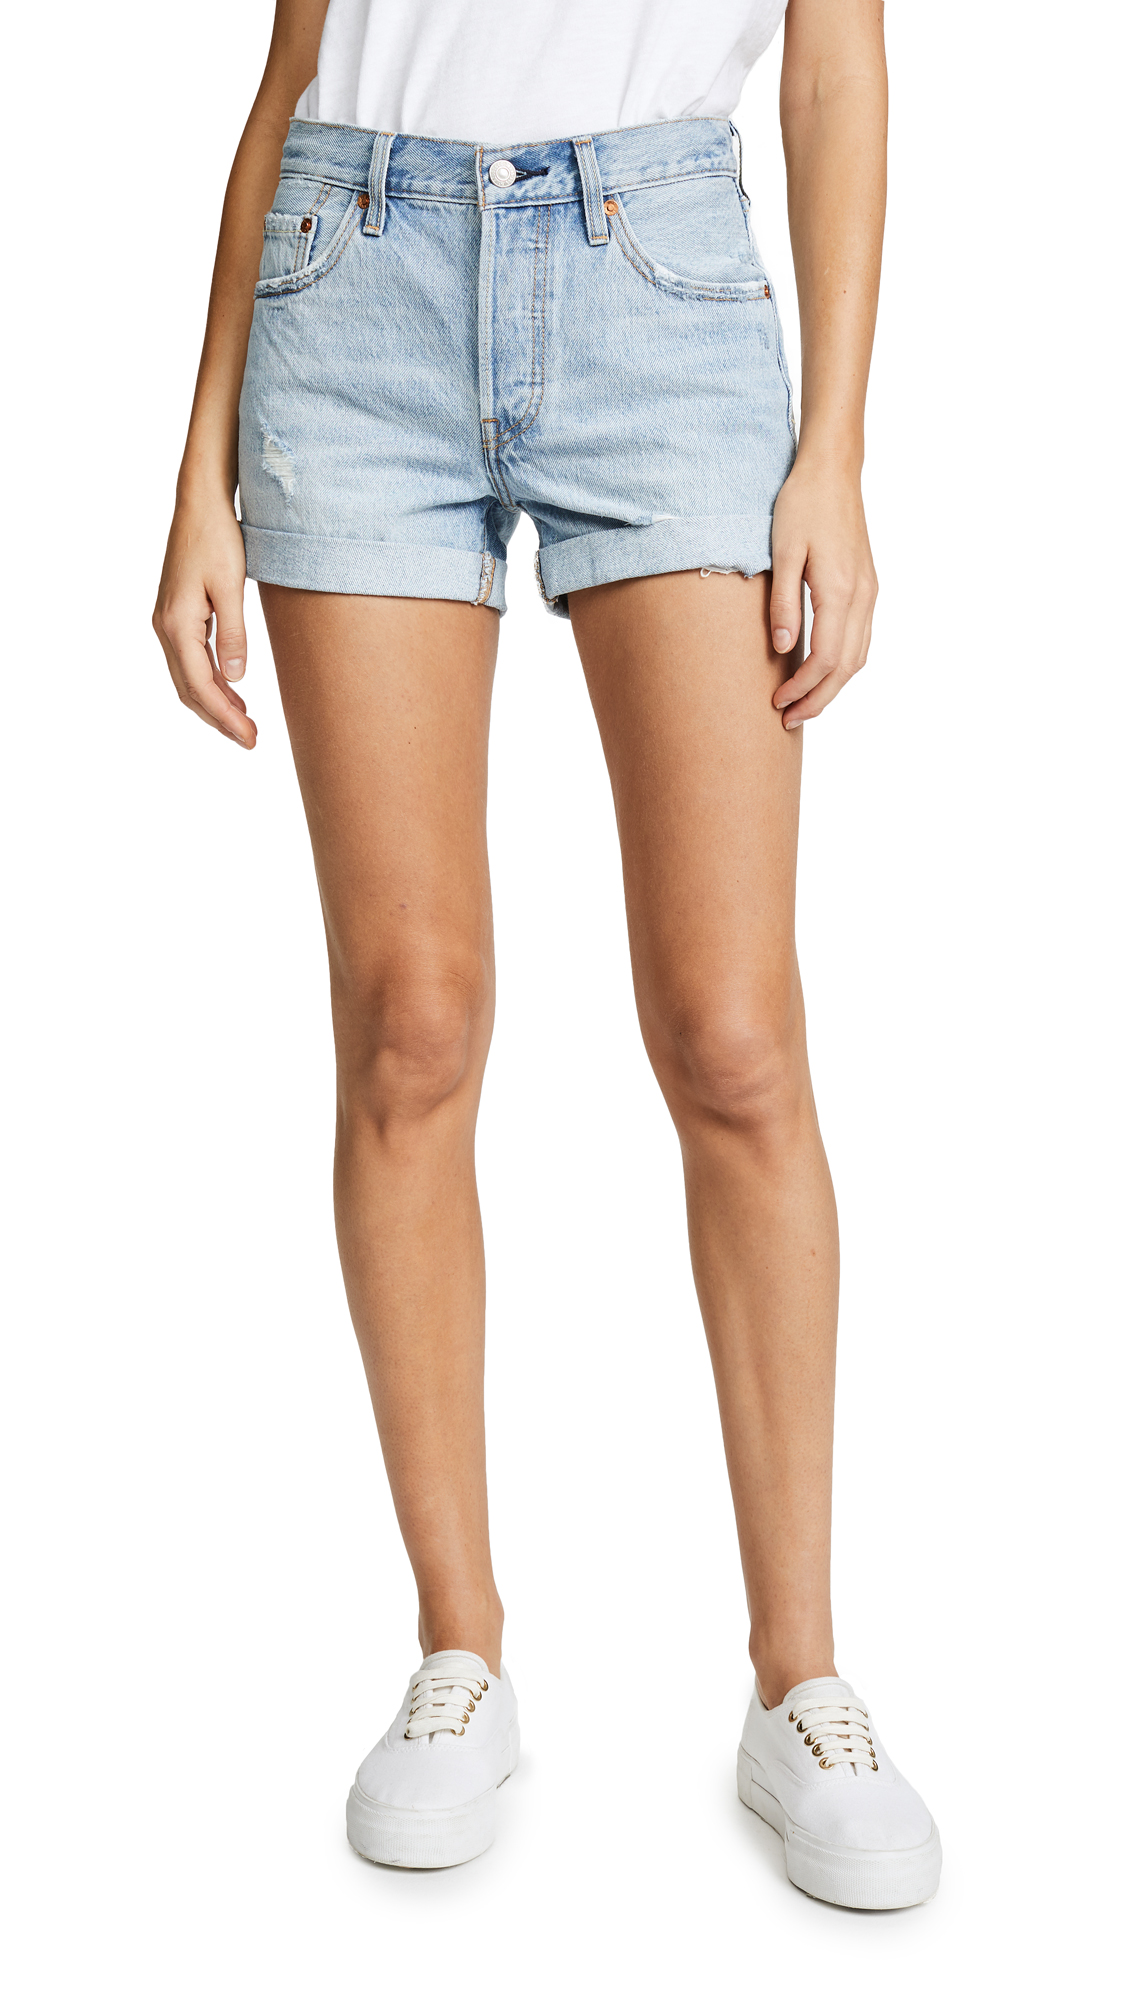 Levi's 501 Long Shorts In North Beach Blues